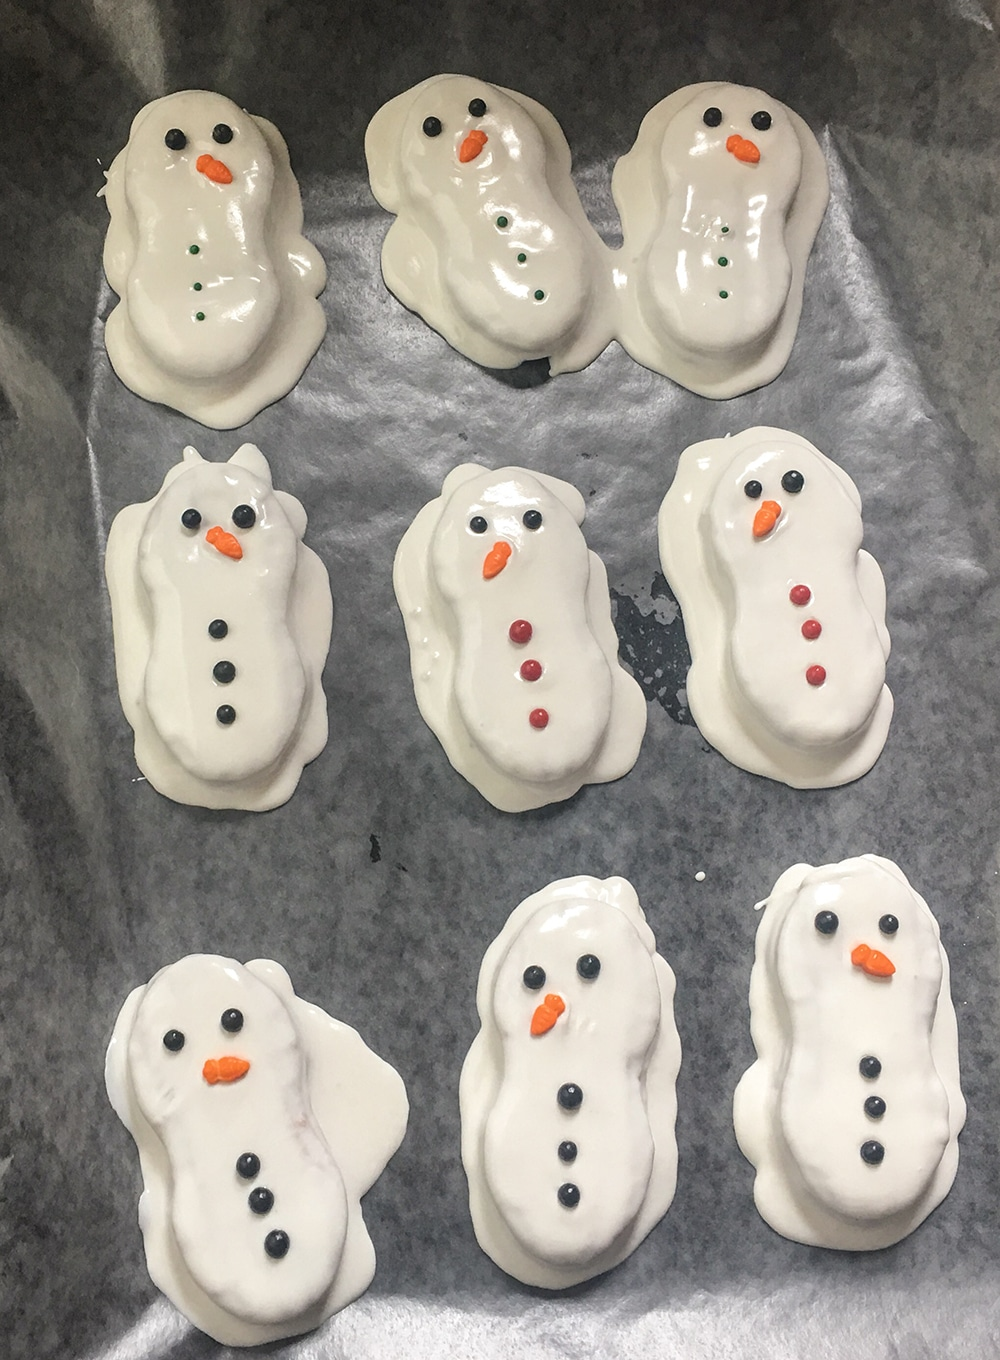 Add eyes, nose, and buttons to snowman nutter butter cookies